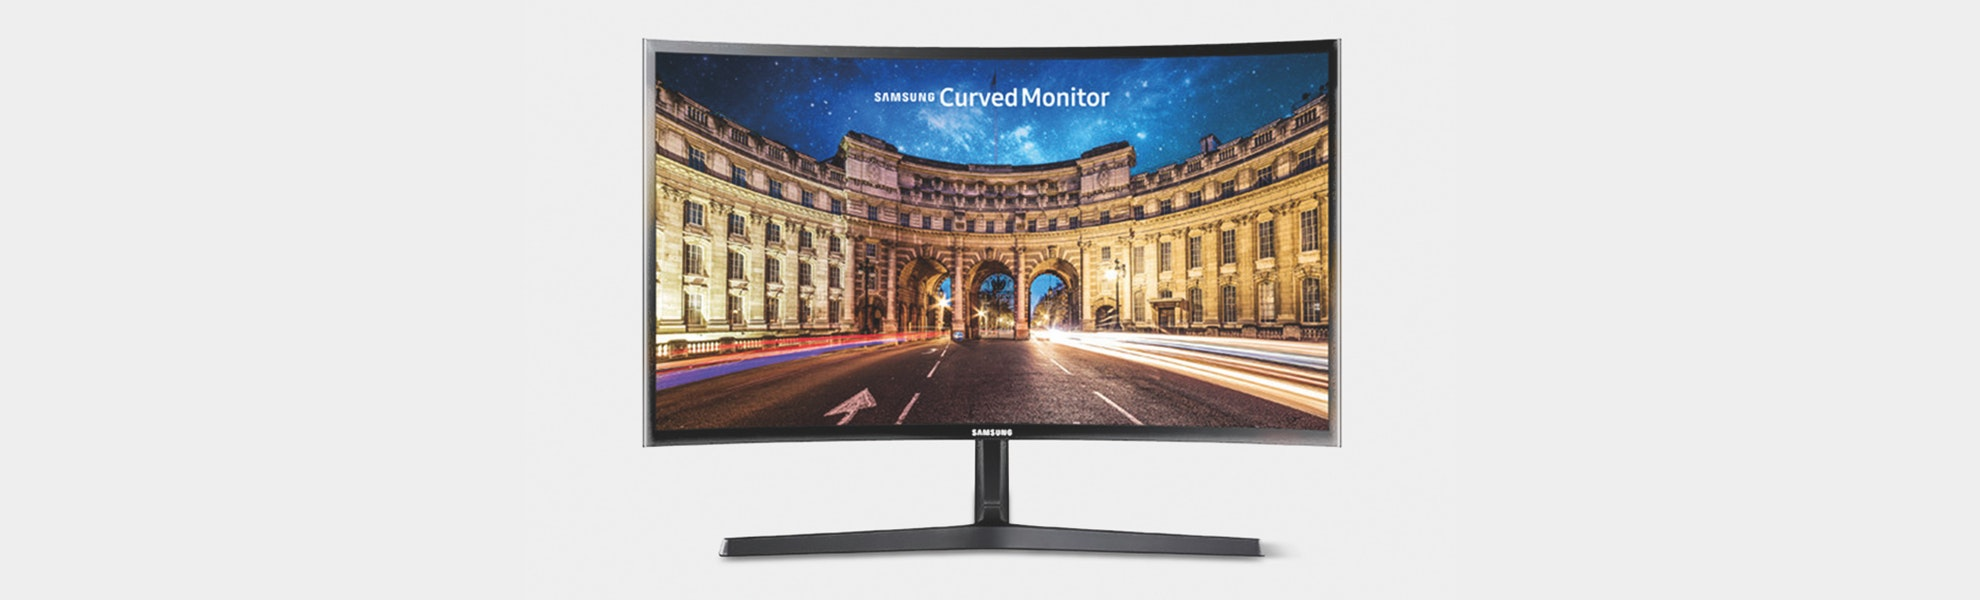 Samsung 27-Inch Curved LED Monitor